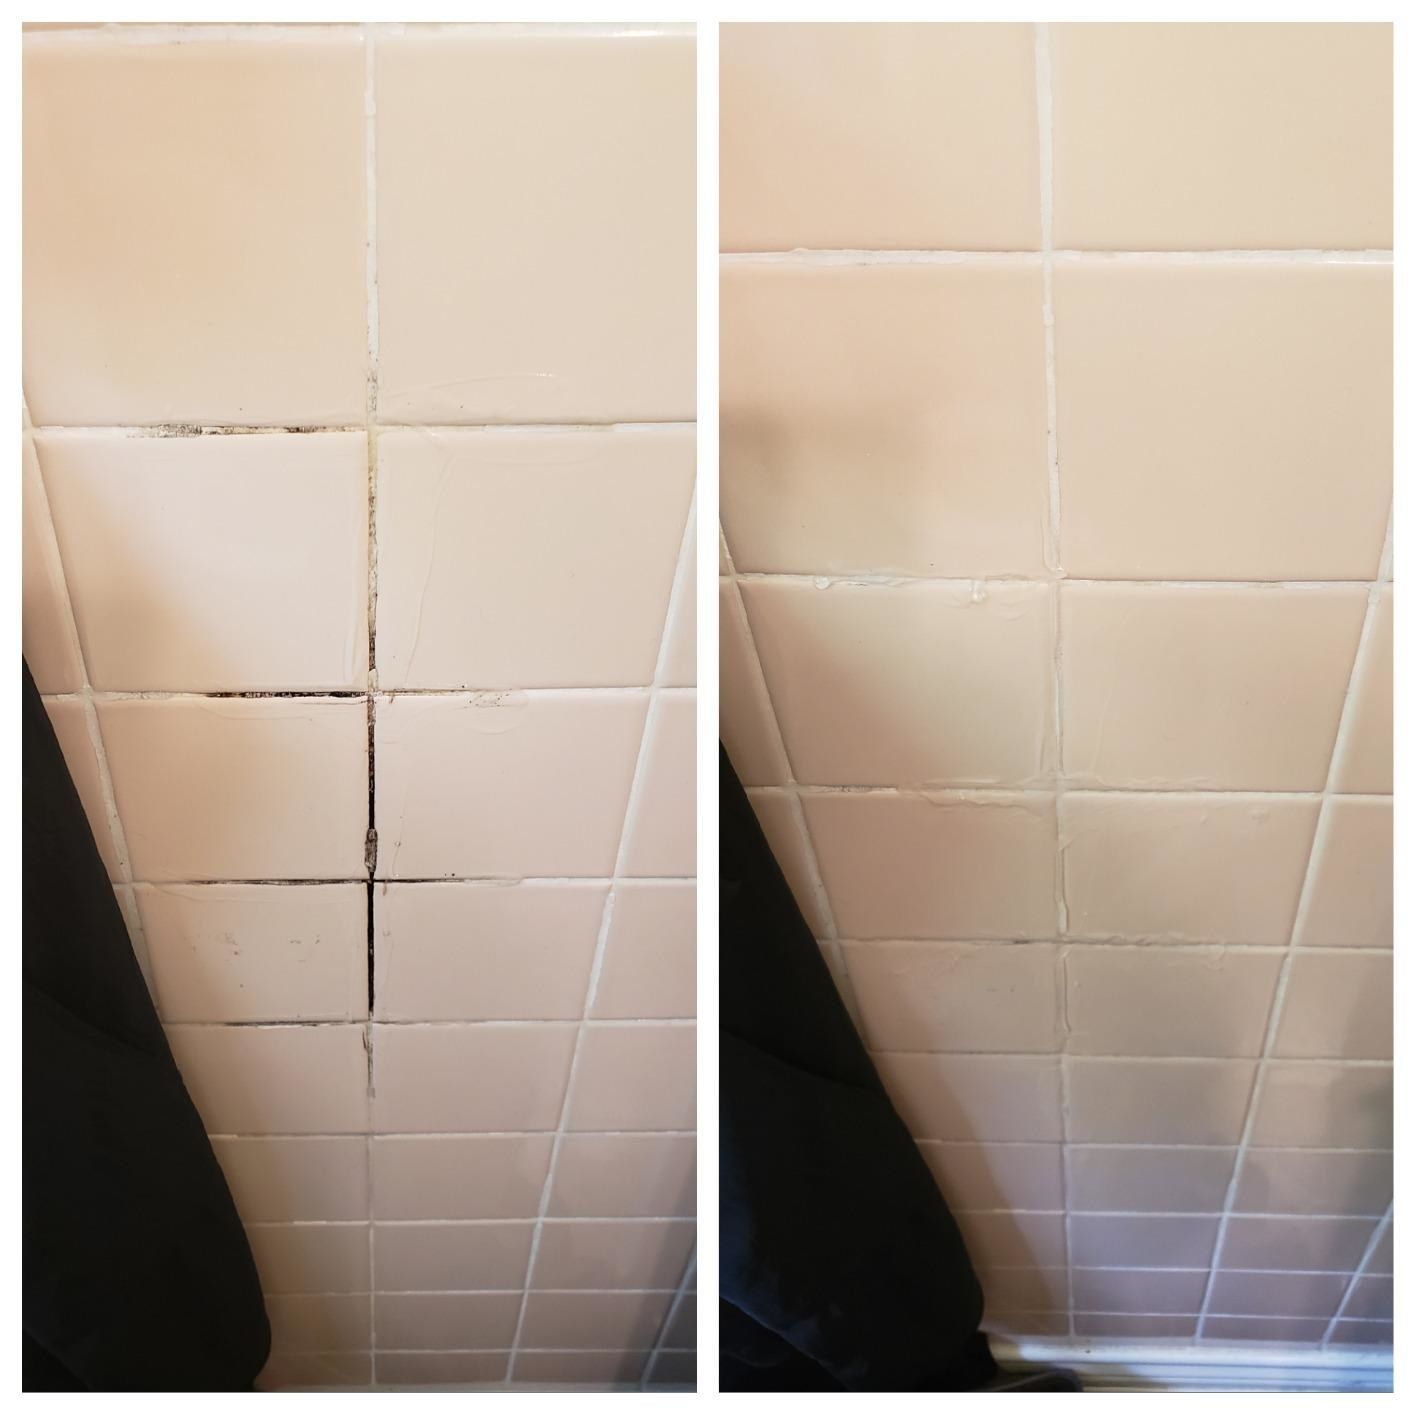 Before photo of tile with black and brown mold in the grout and after photo of the same tile that's now totally mold free